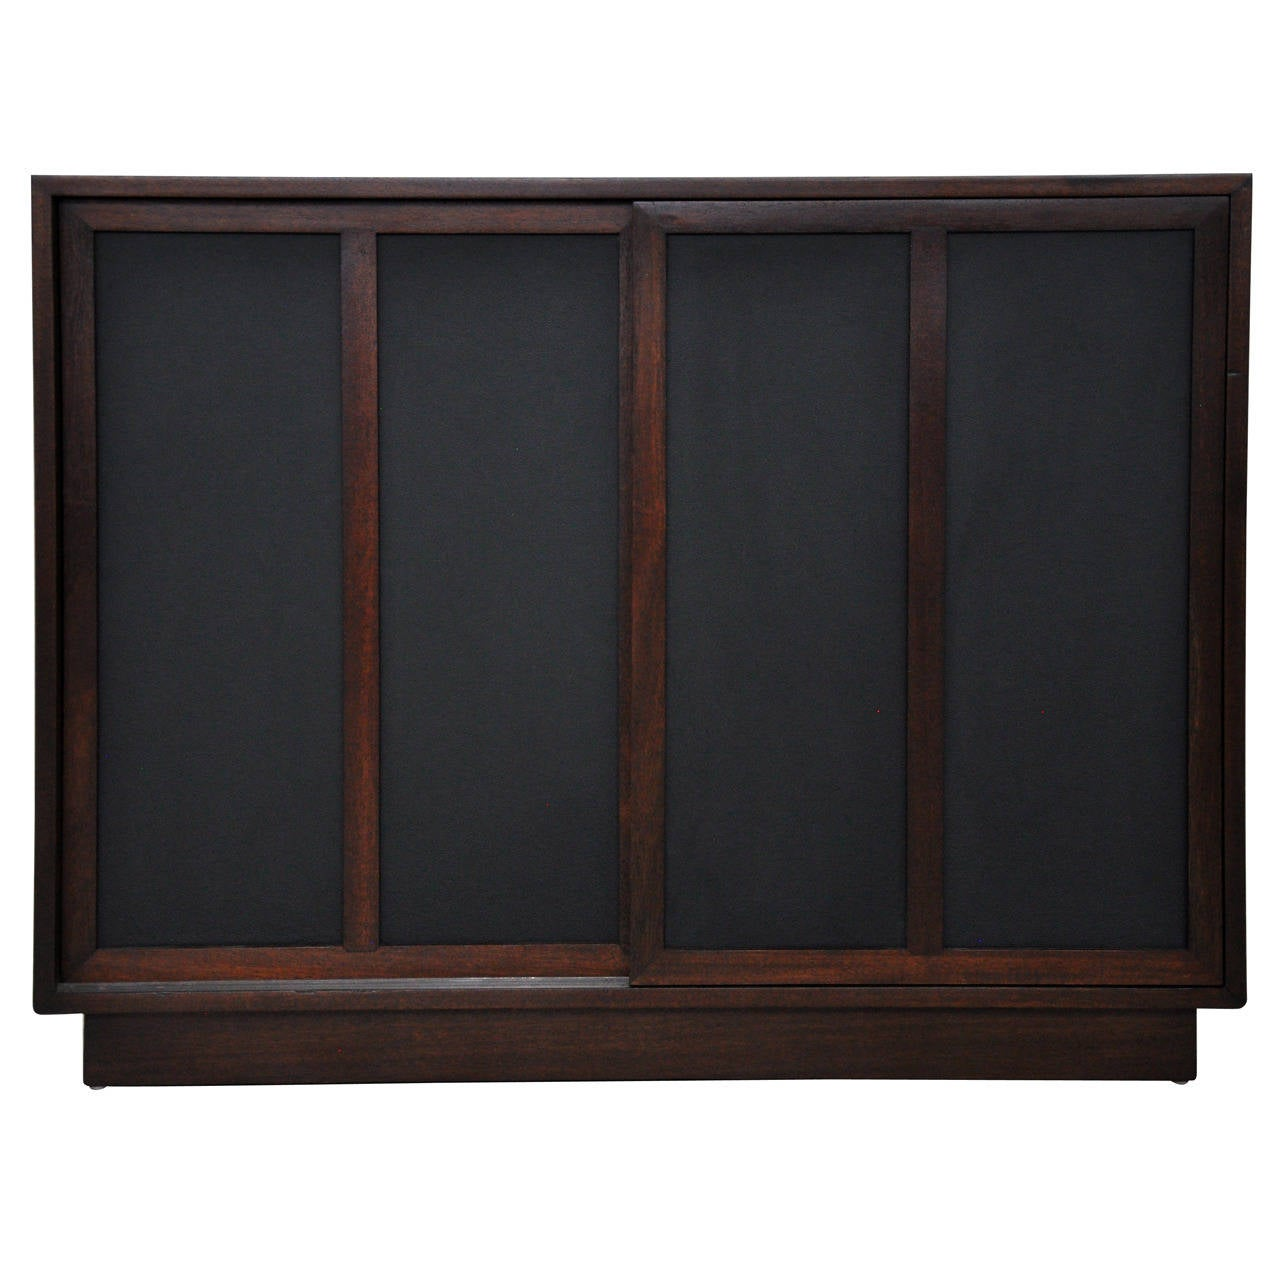 1280 #5A3A34 This Harvey Probber Chest With Leather Doors Is No Longer Available. save image Harvey Doors 43271280